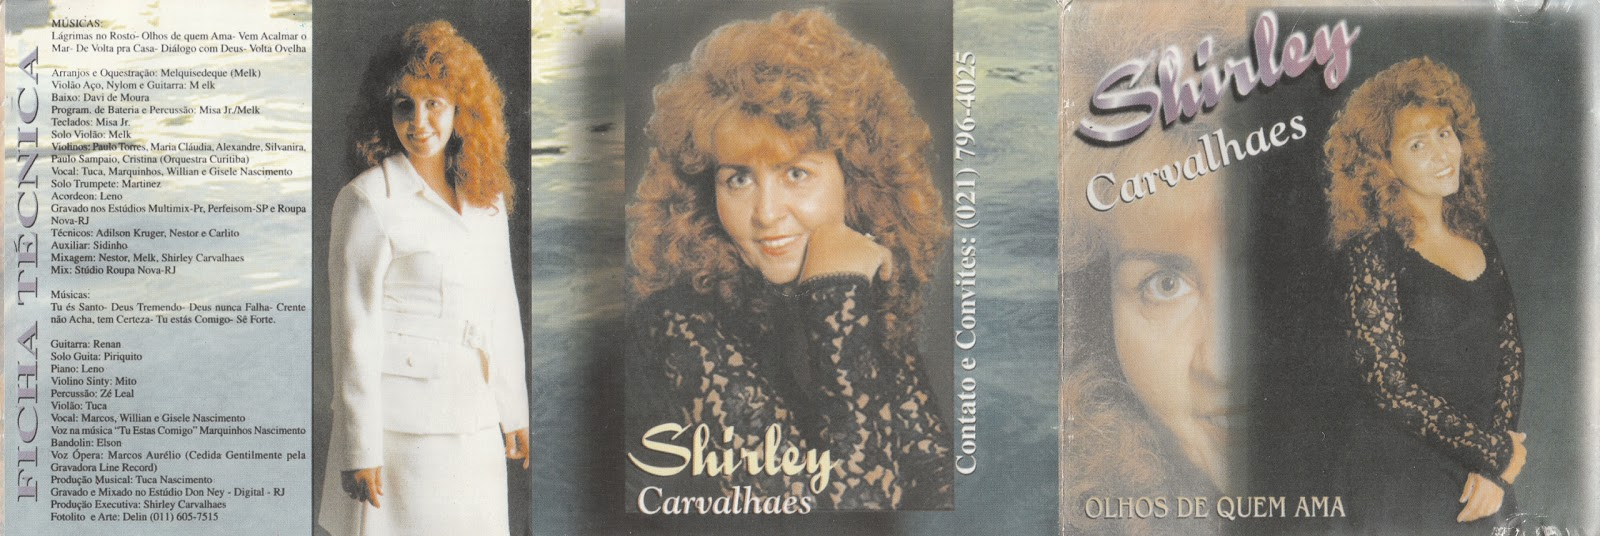 cd shirley carvalhaes 1998